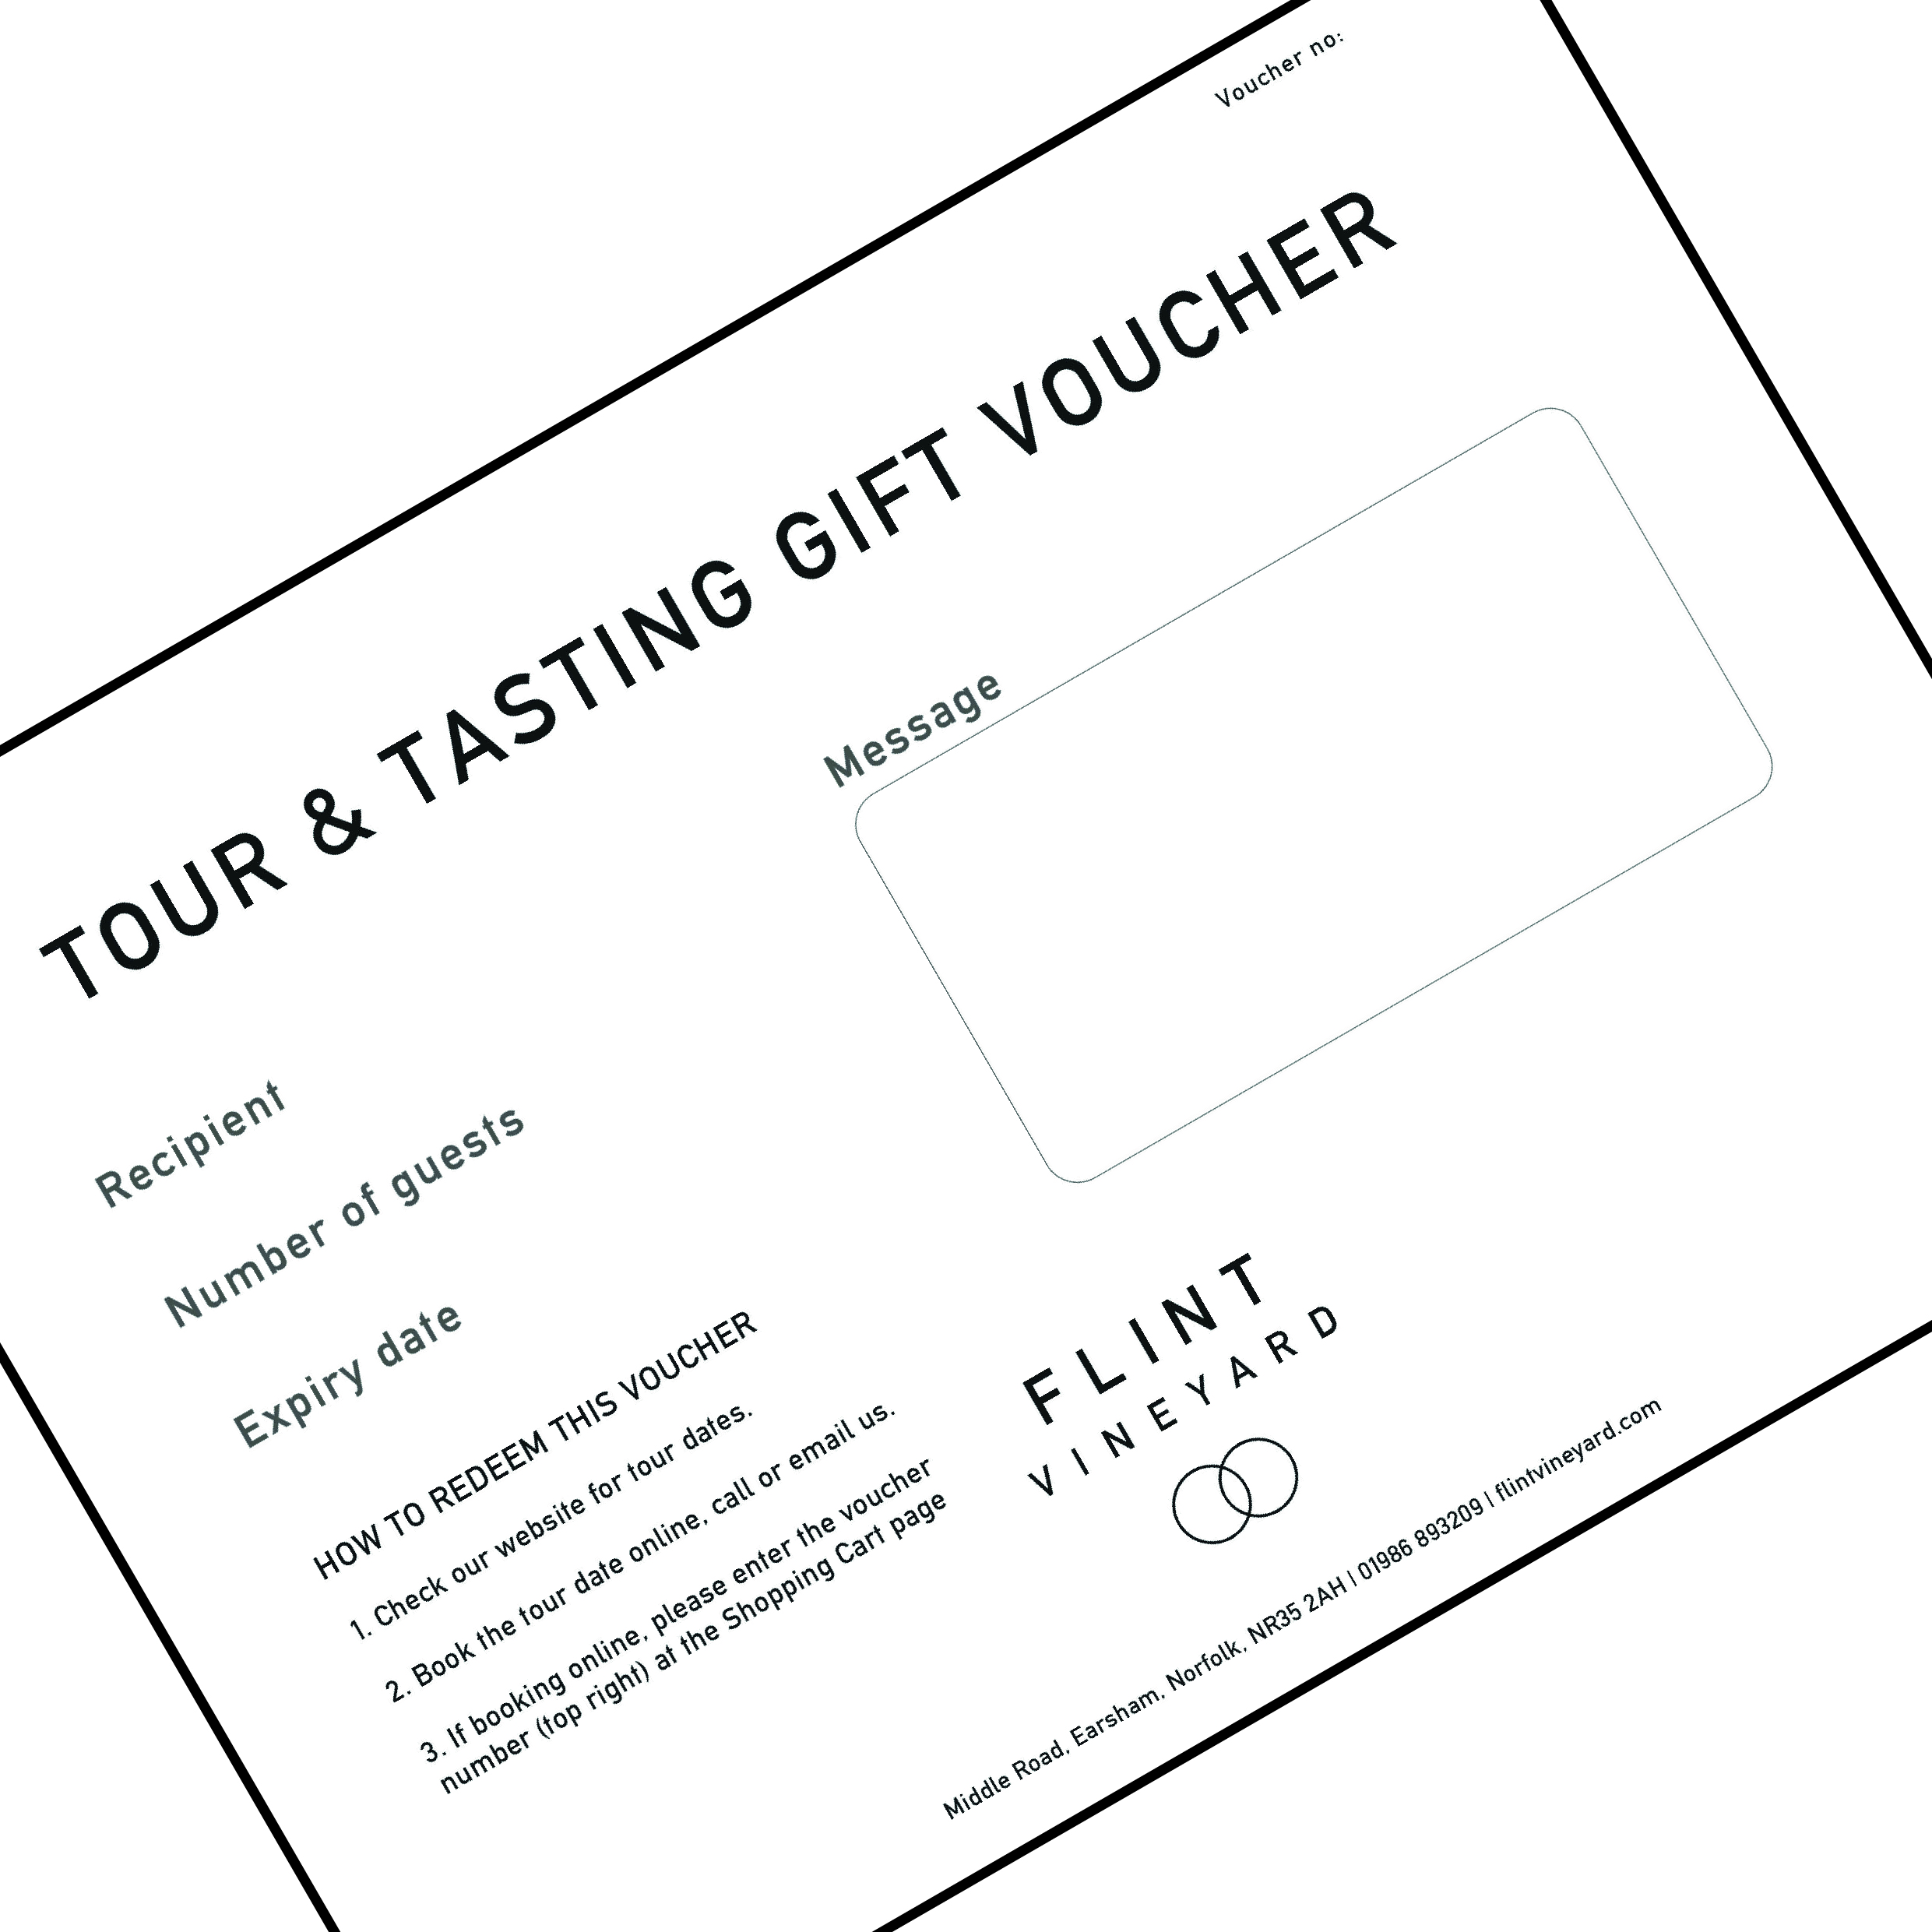 Tour tasting gift voucher with lunch flint vineyard gift voucher negle Gallery